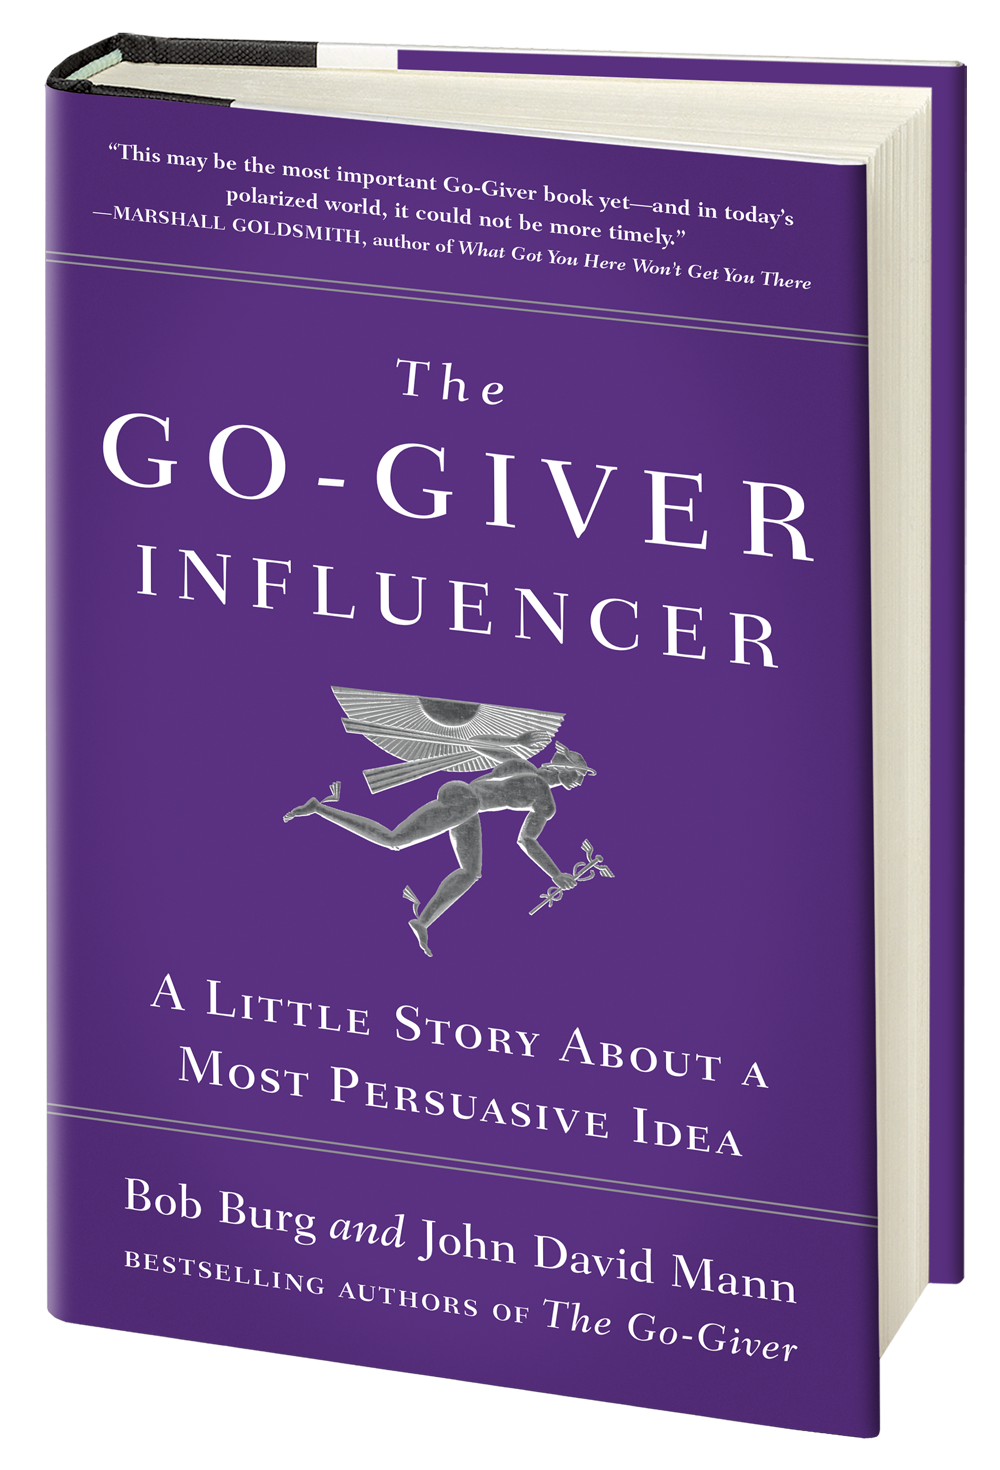 Know Like Trust And Creating Value Conversation With Speaker Author And Sales Expert Bob Burg